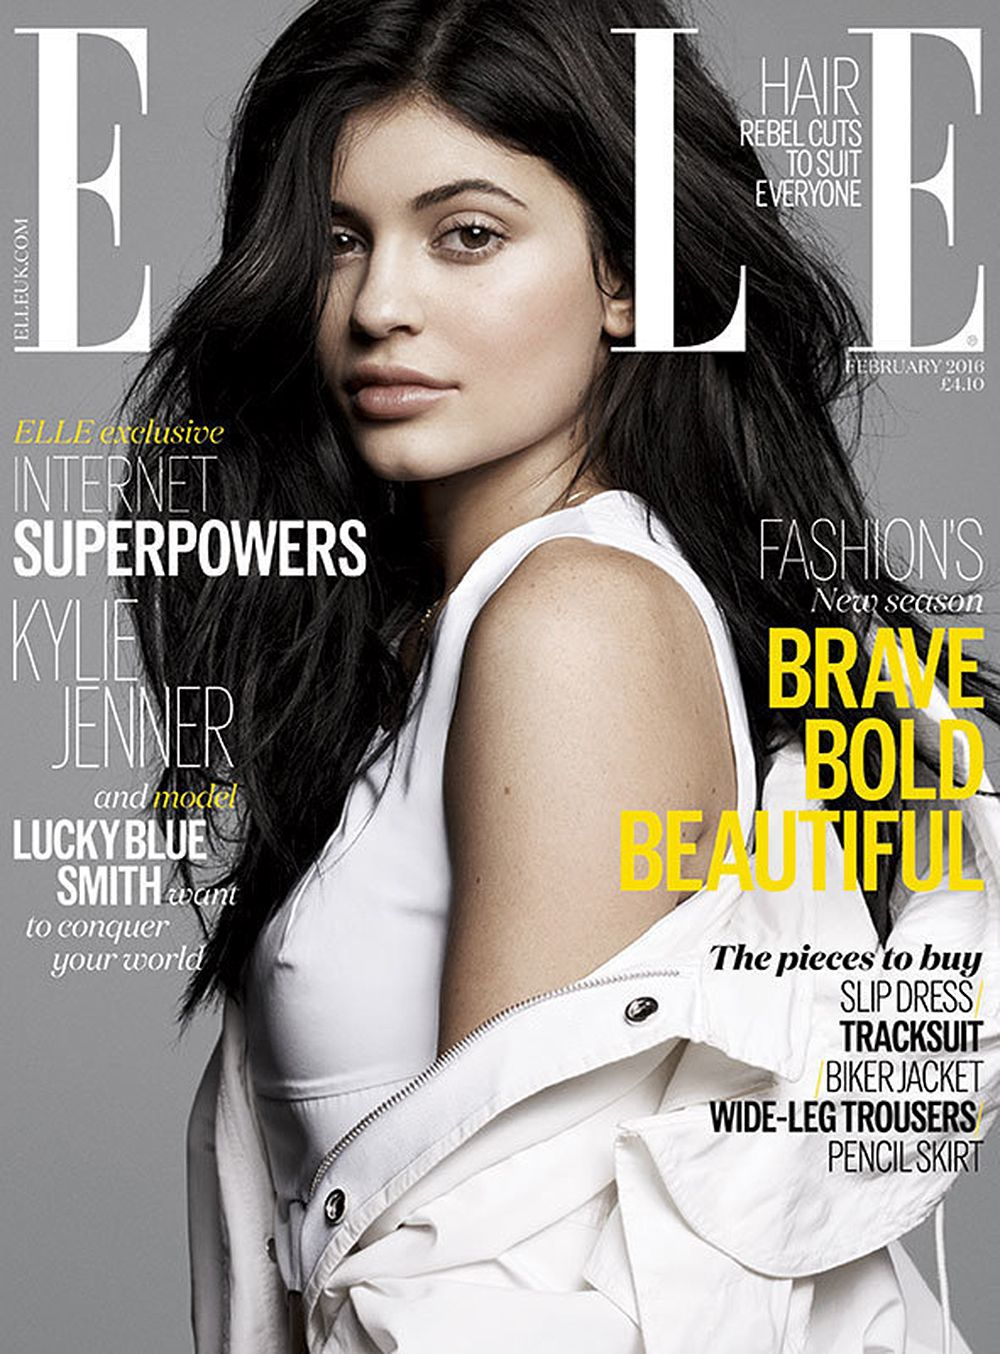 Fresh Faced Kylie Jenner Lands Another Fashion Magazine Cover